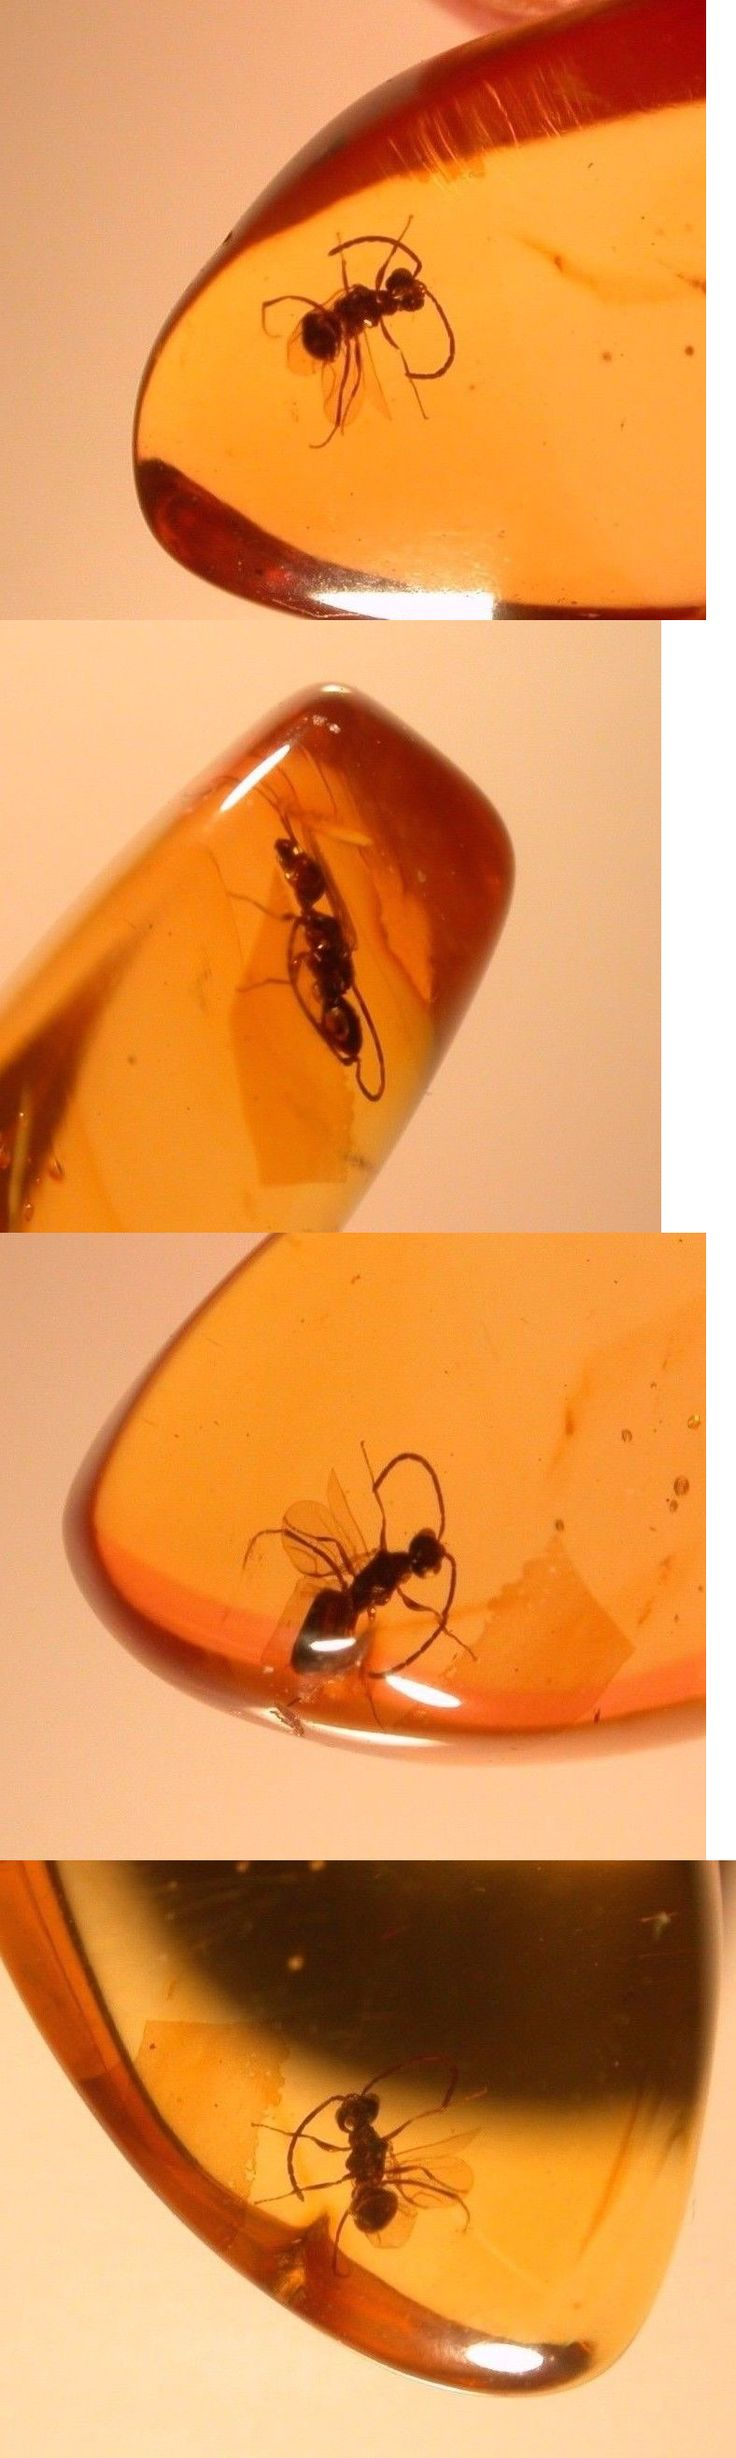 Amber 10191: Beautiful Winged Ant In Burmite Amber From Dinosaur Era 99 Million Years Old -> BUY IT NOW ONLY: $60 on eBay!